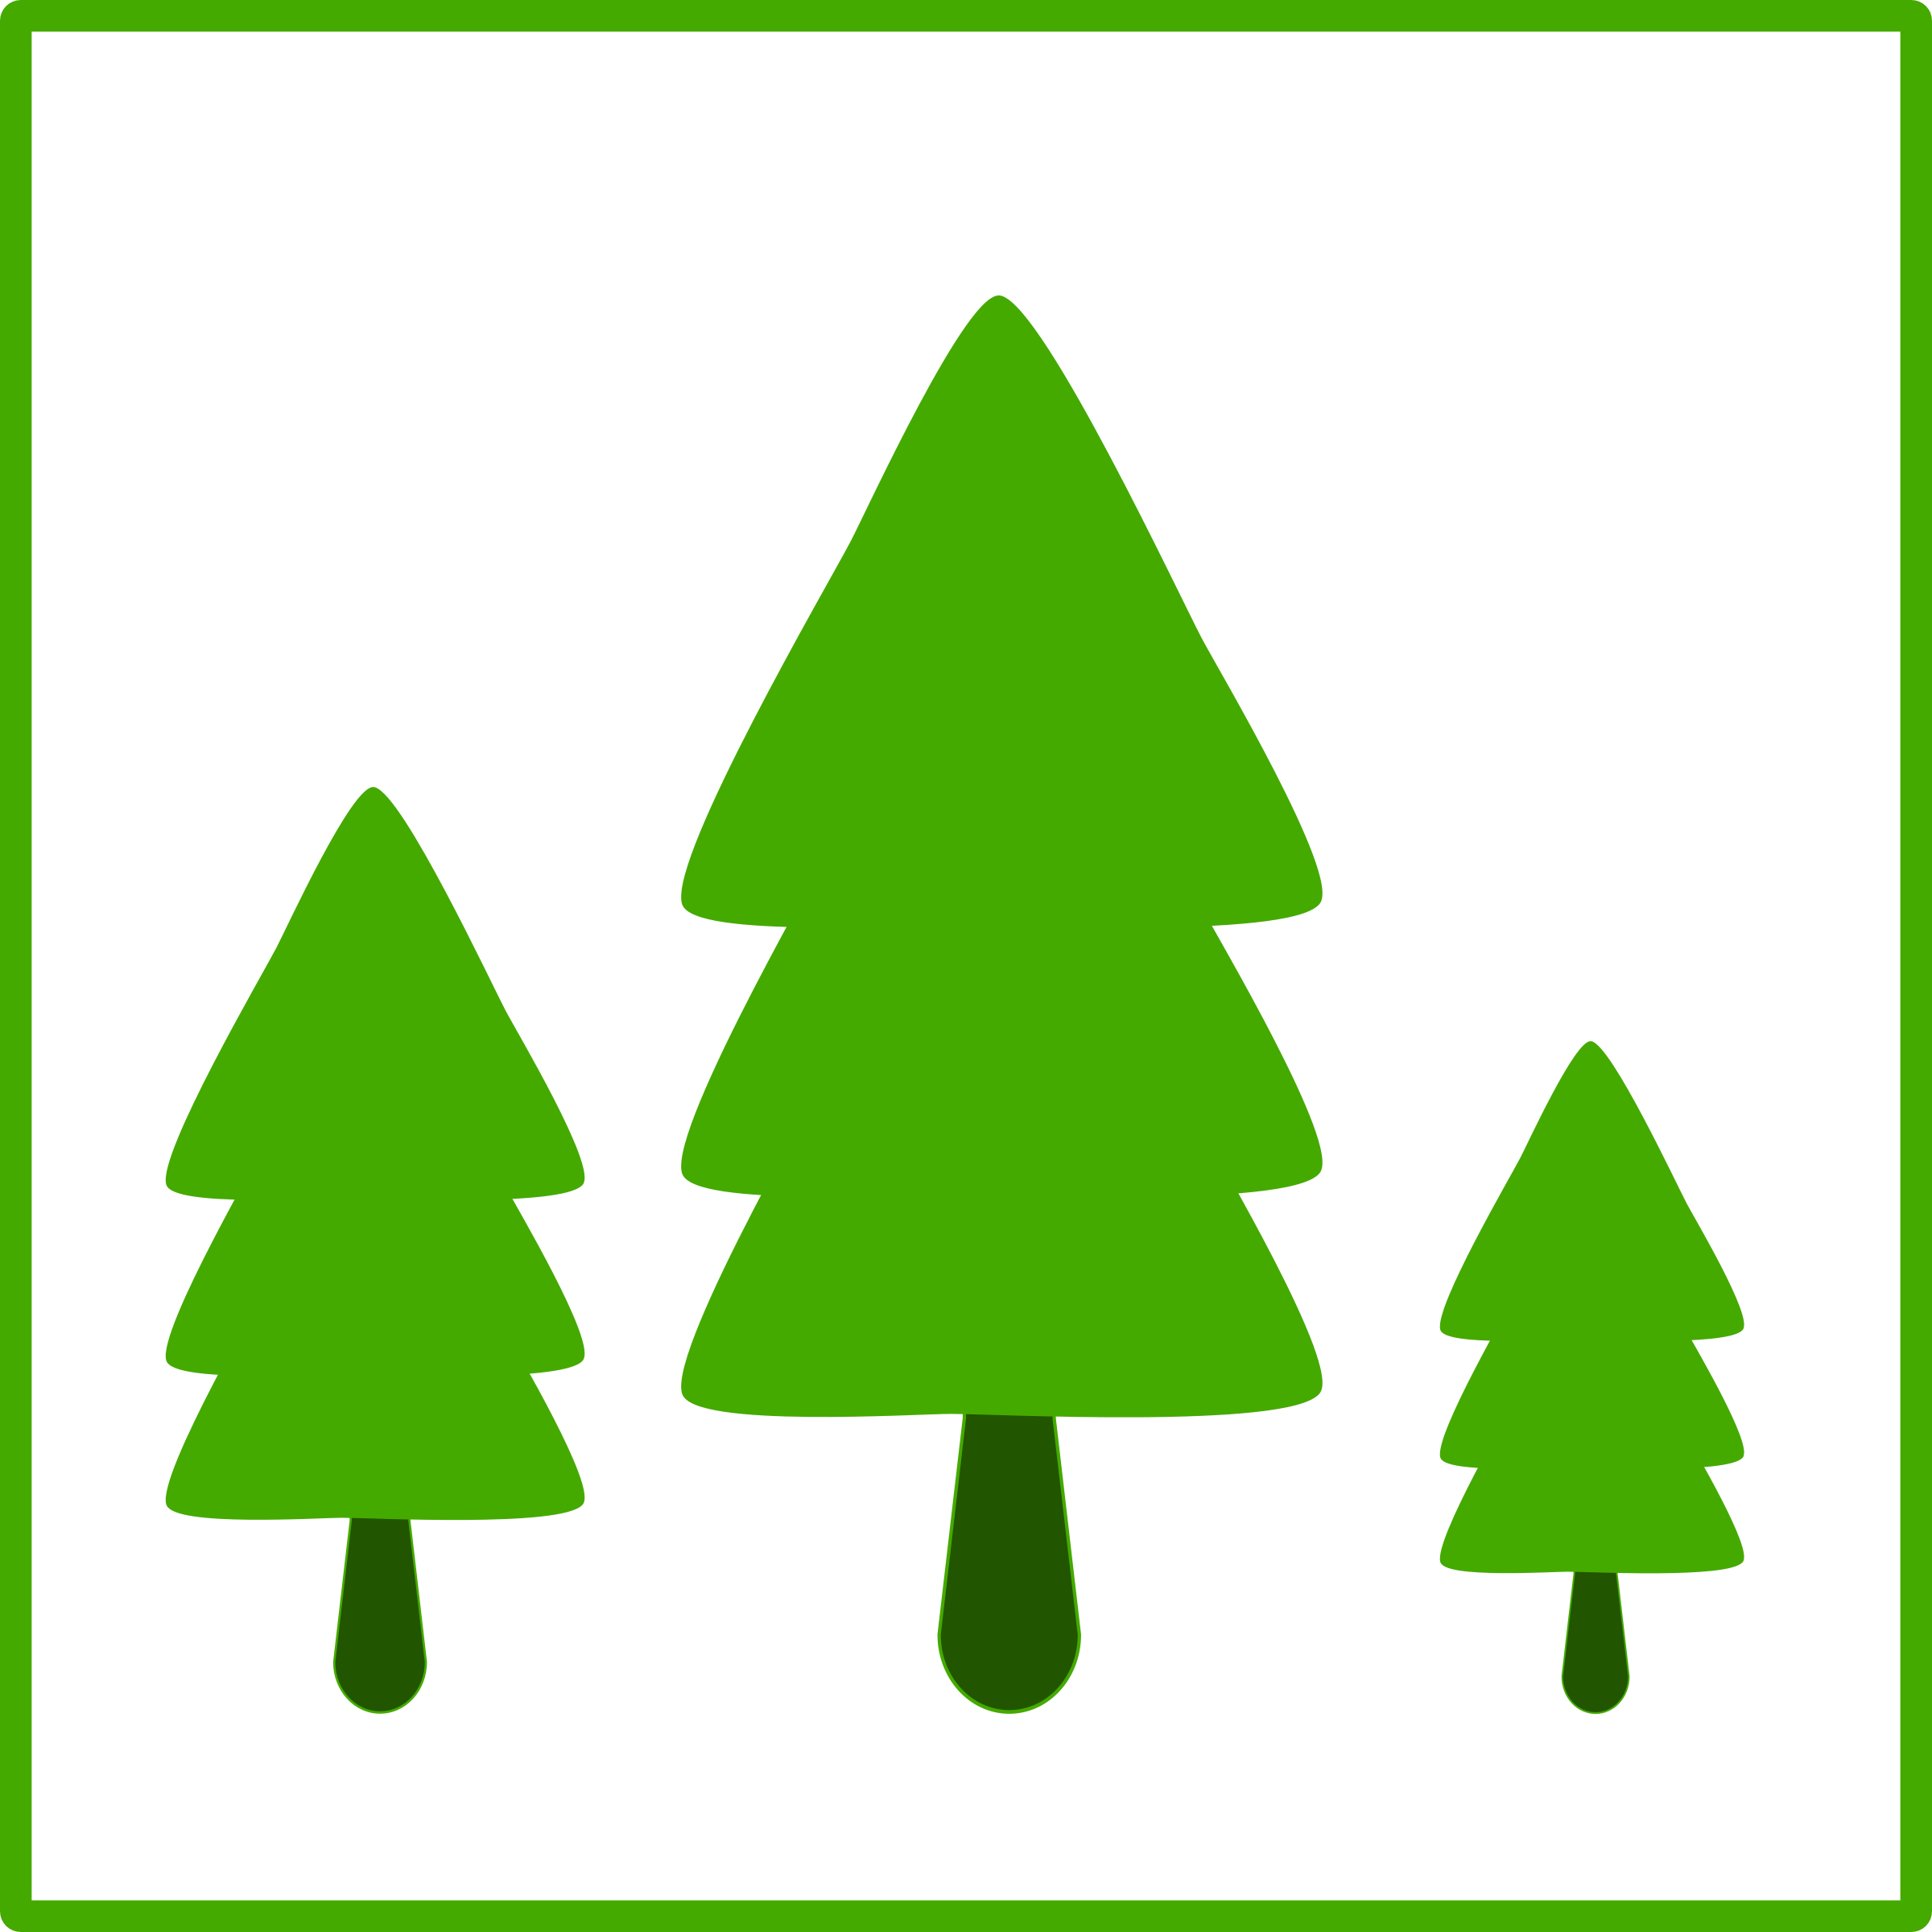 eco green trees icon  by dominiquechappard